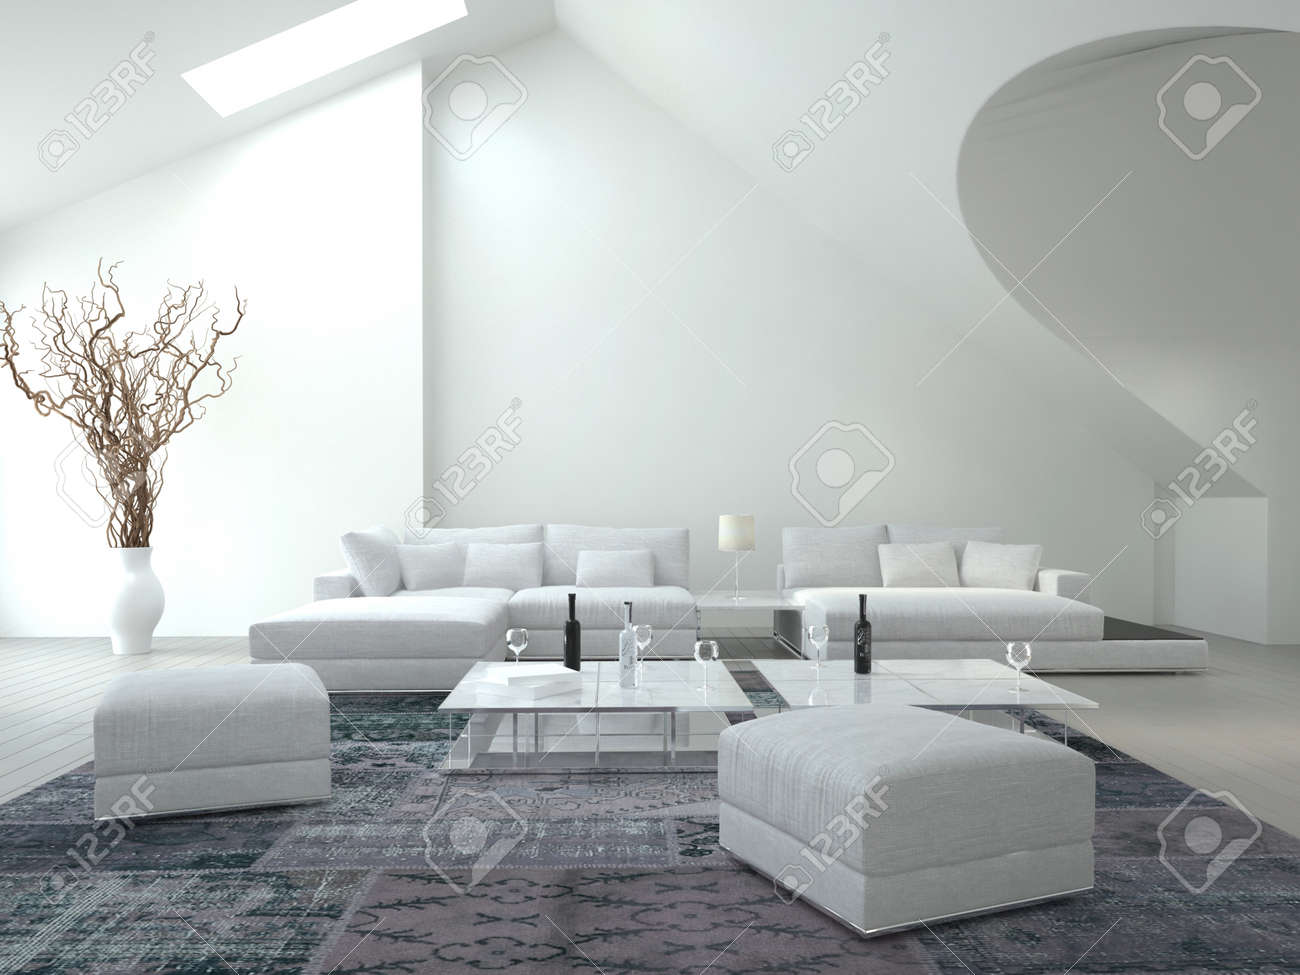 Classy White Living Room Stock Photo, Picture And Royalty Free Image ...